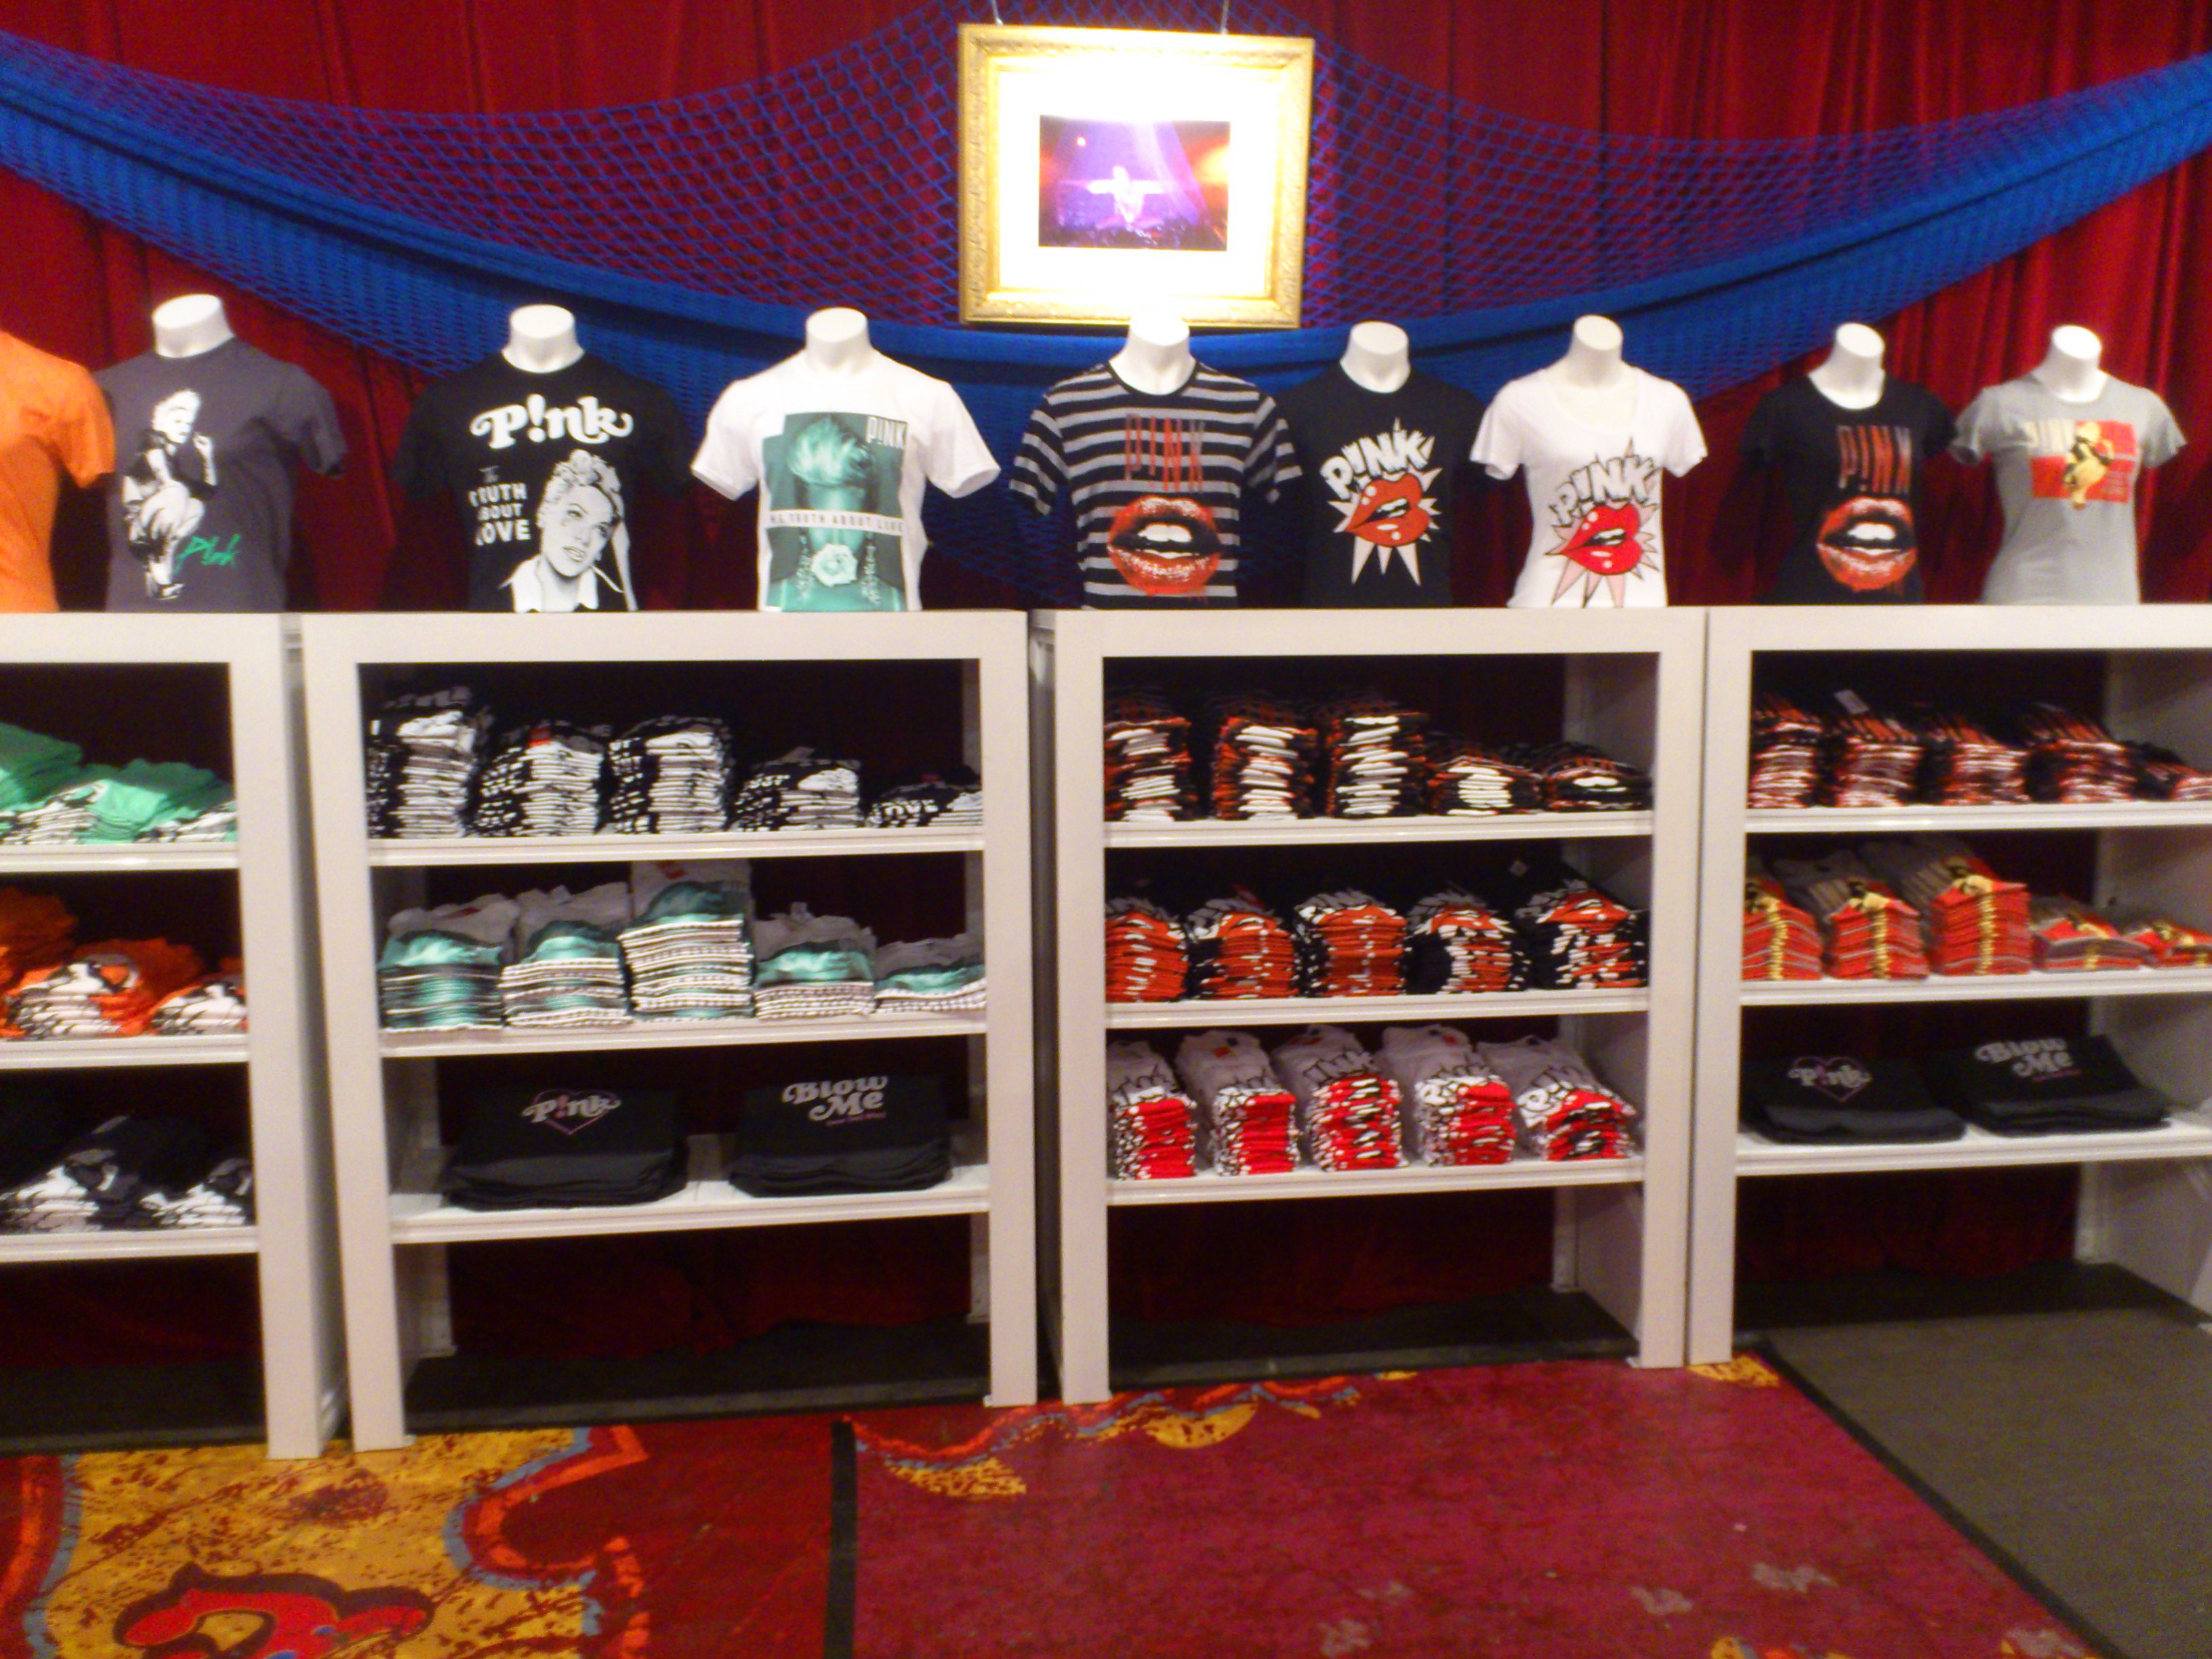 Music clothing stores